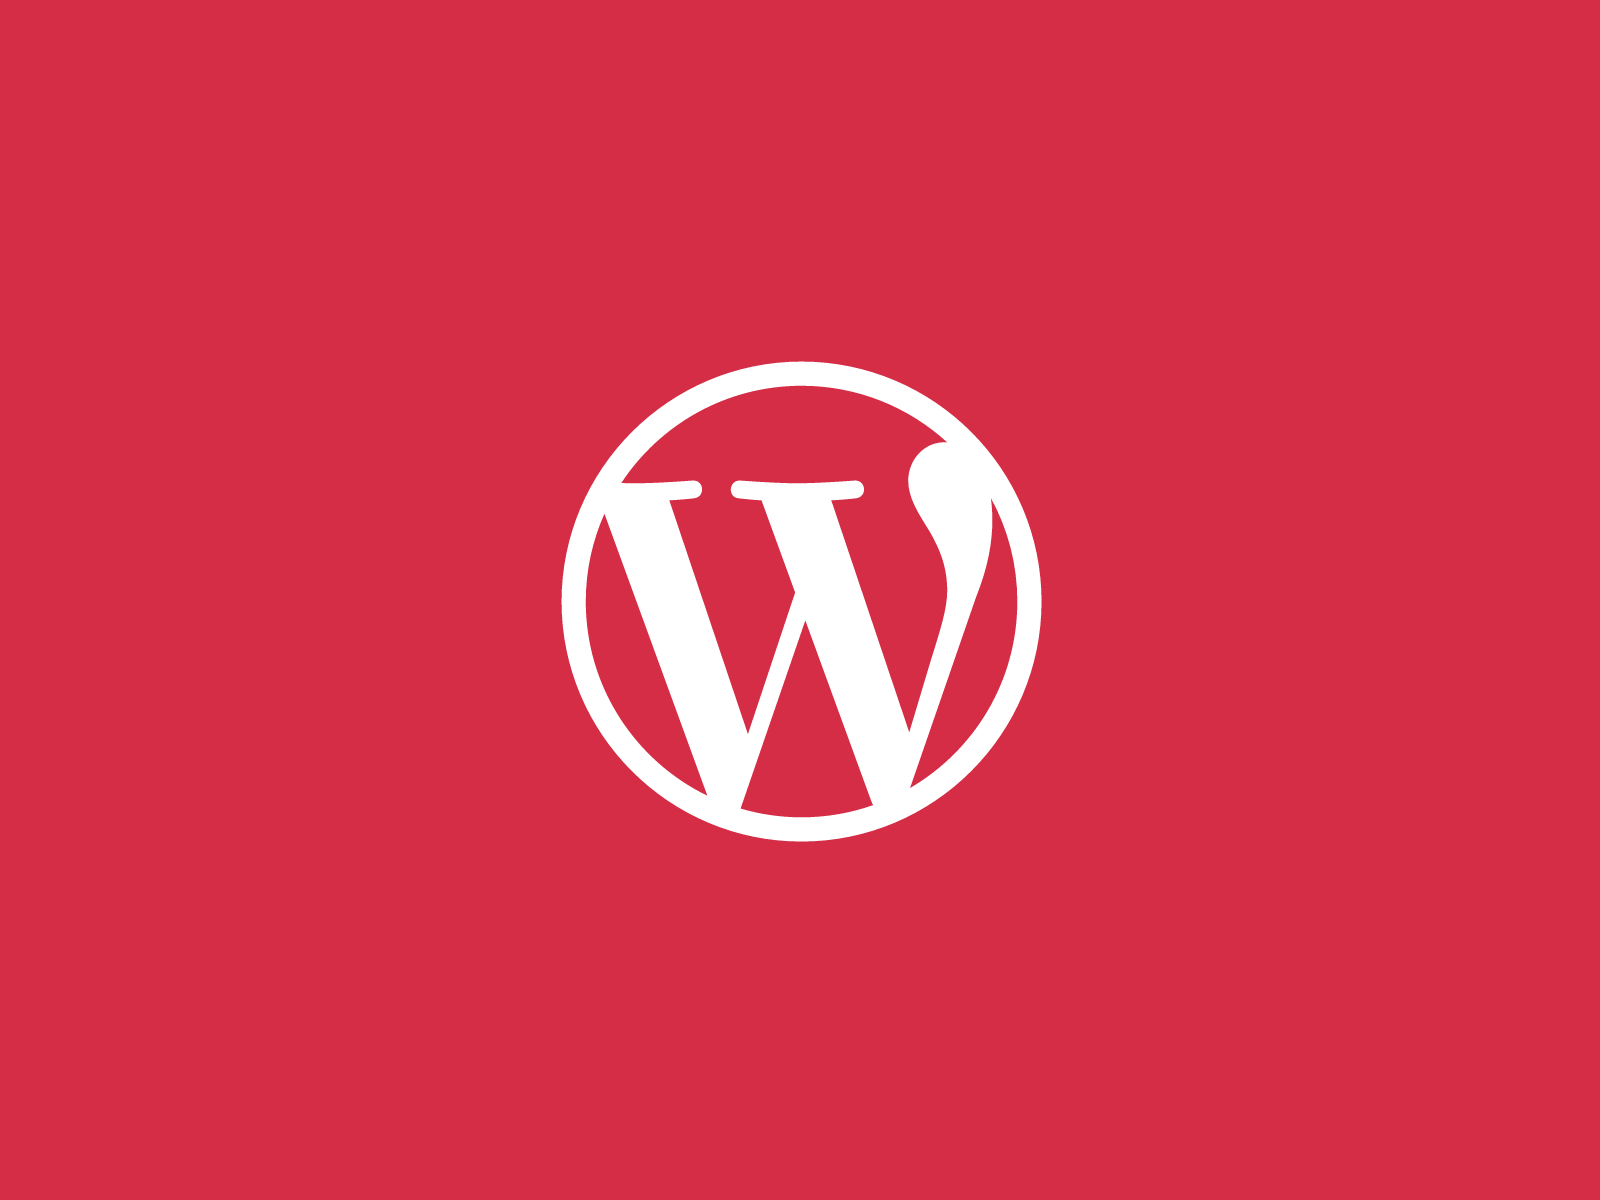 WordPress logo red